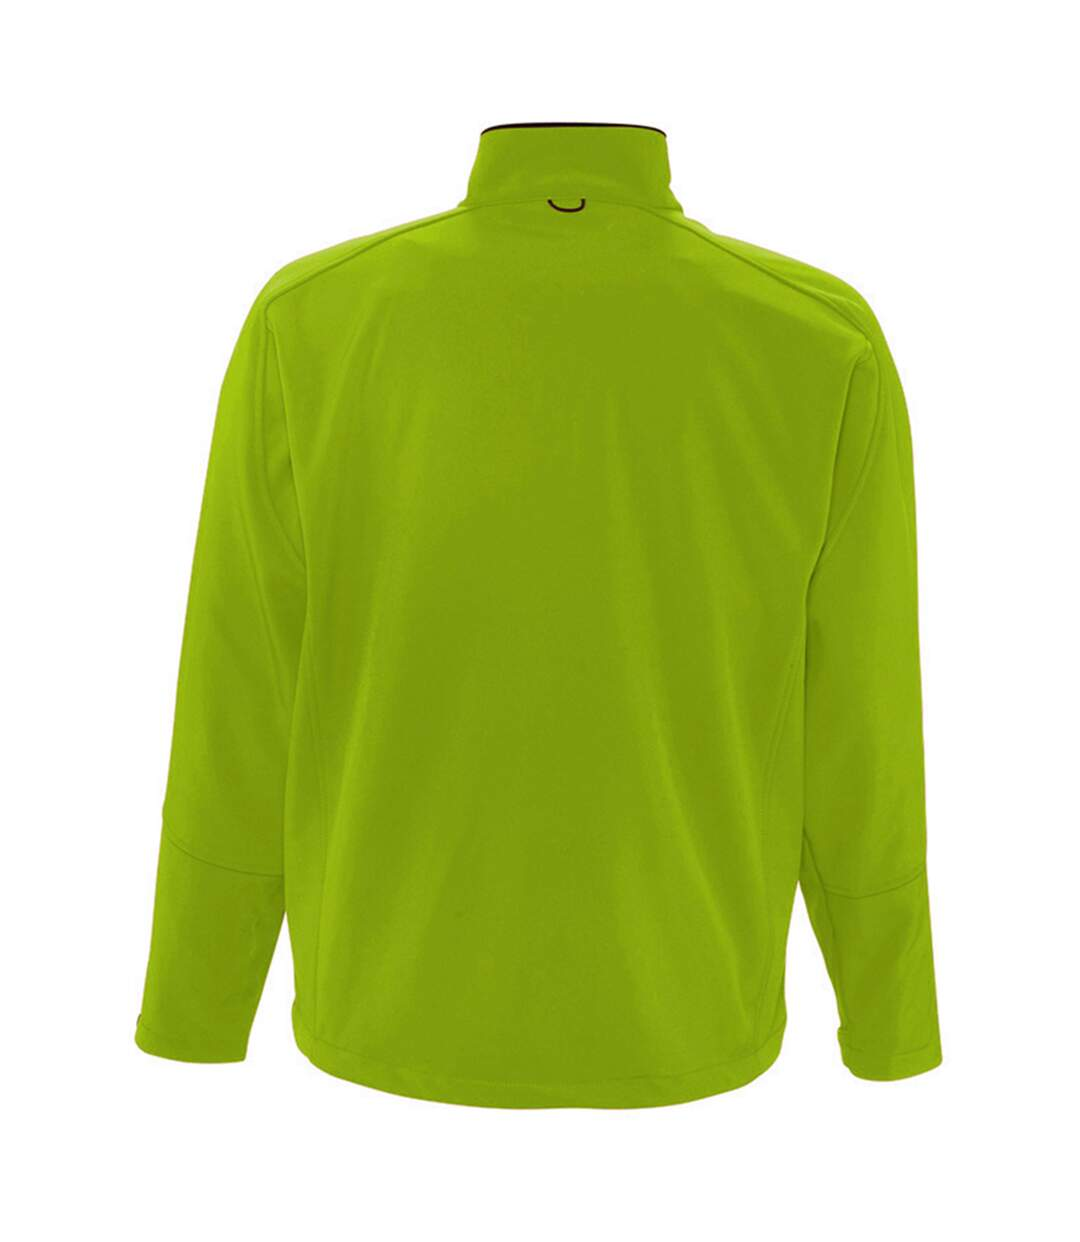 SOLS Mens Relax Soft Shell Jacket (Breathable, Windproof And Water Resistant) (Absinth Green) - UTPC347